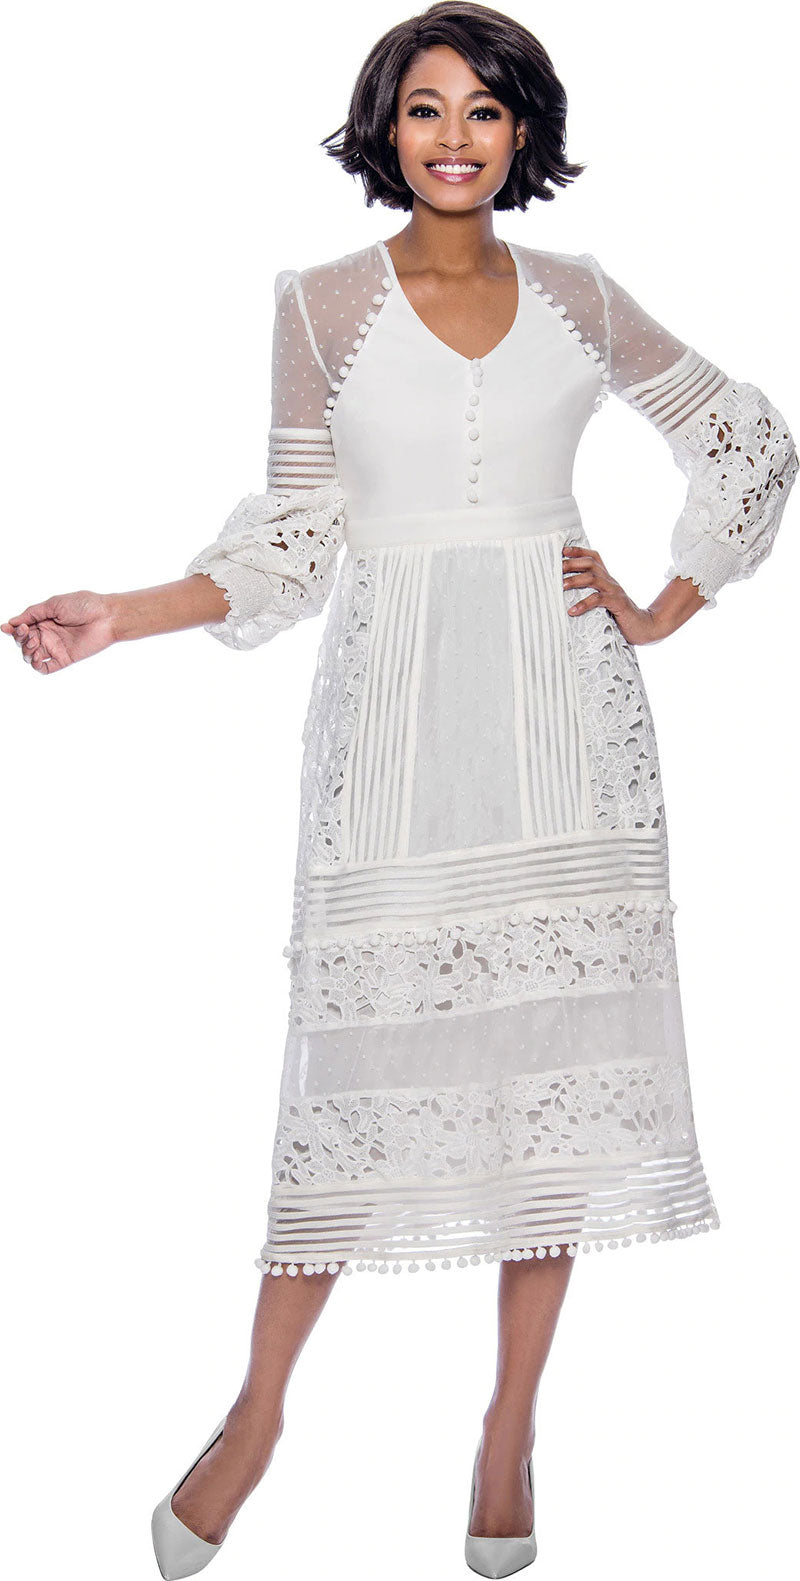 Terramina Dress 7827-White - Church Suits For Less